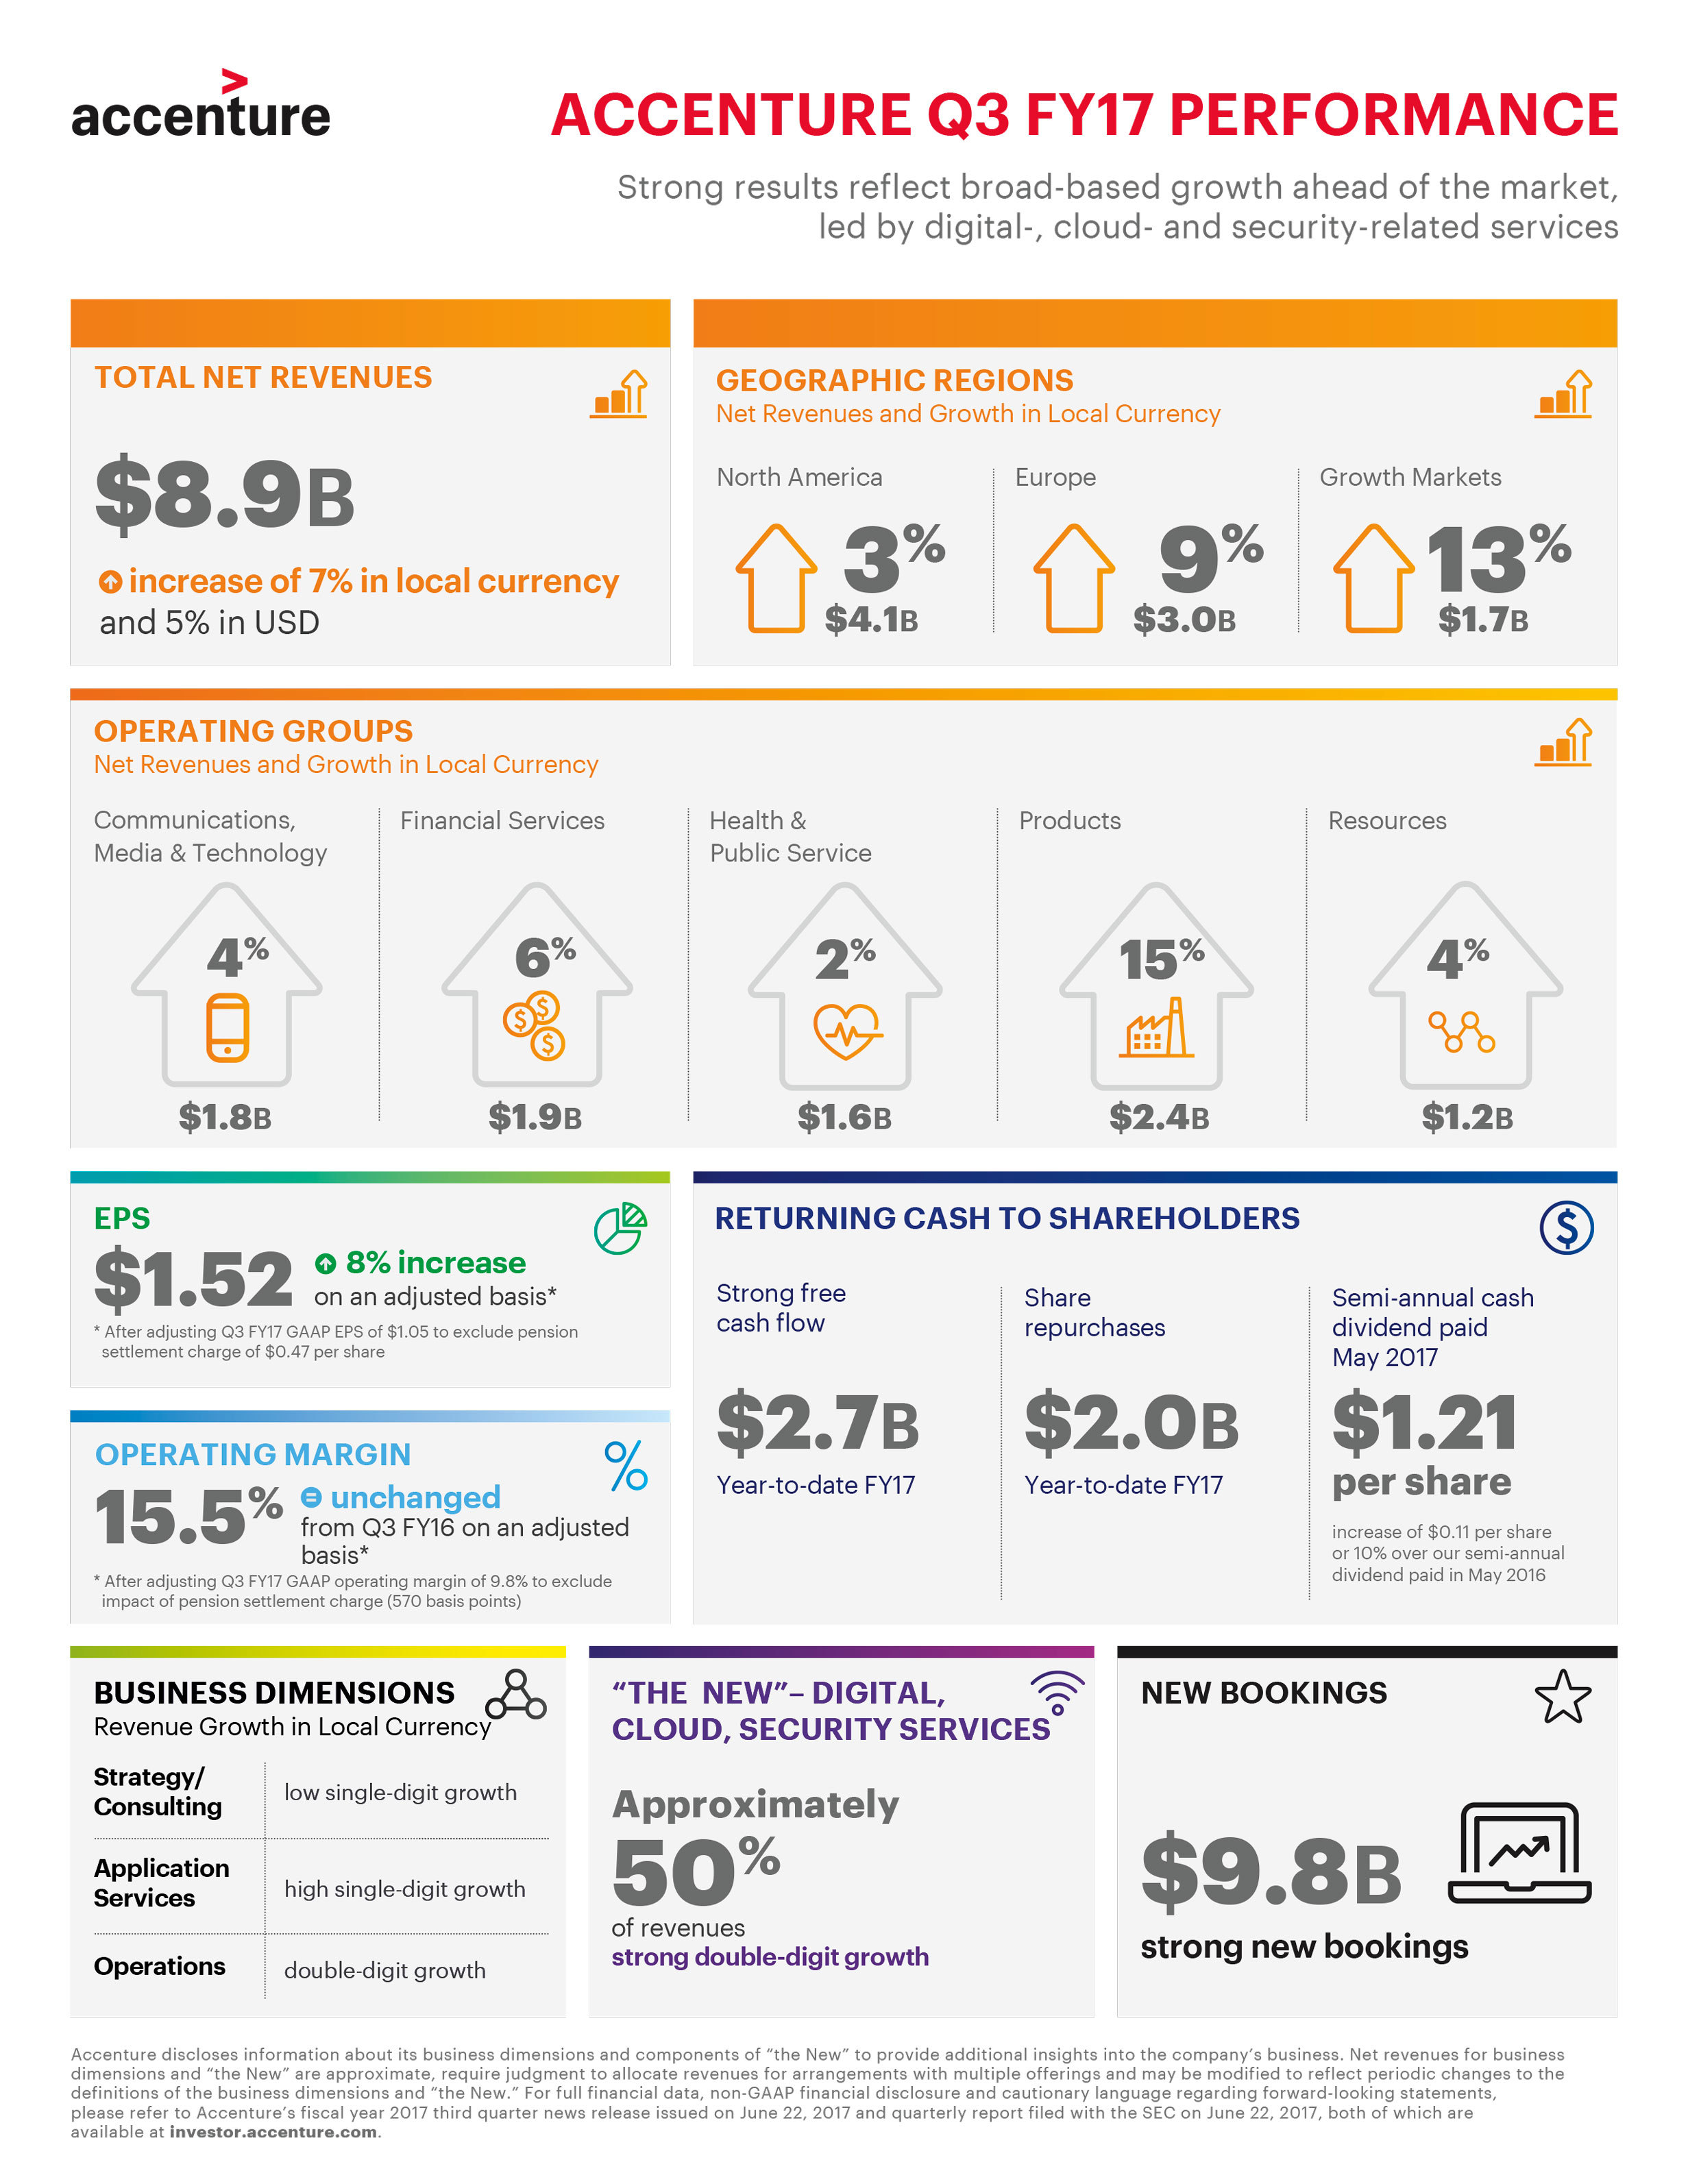 Accenture Q3 FY17 Performance Infographic (Graphic: Business Wire)